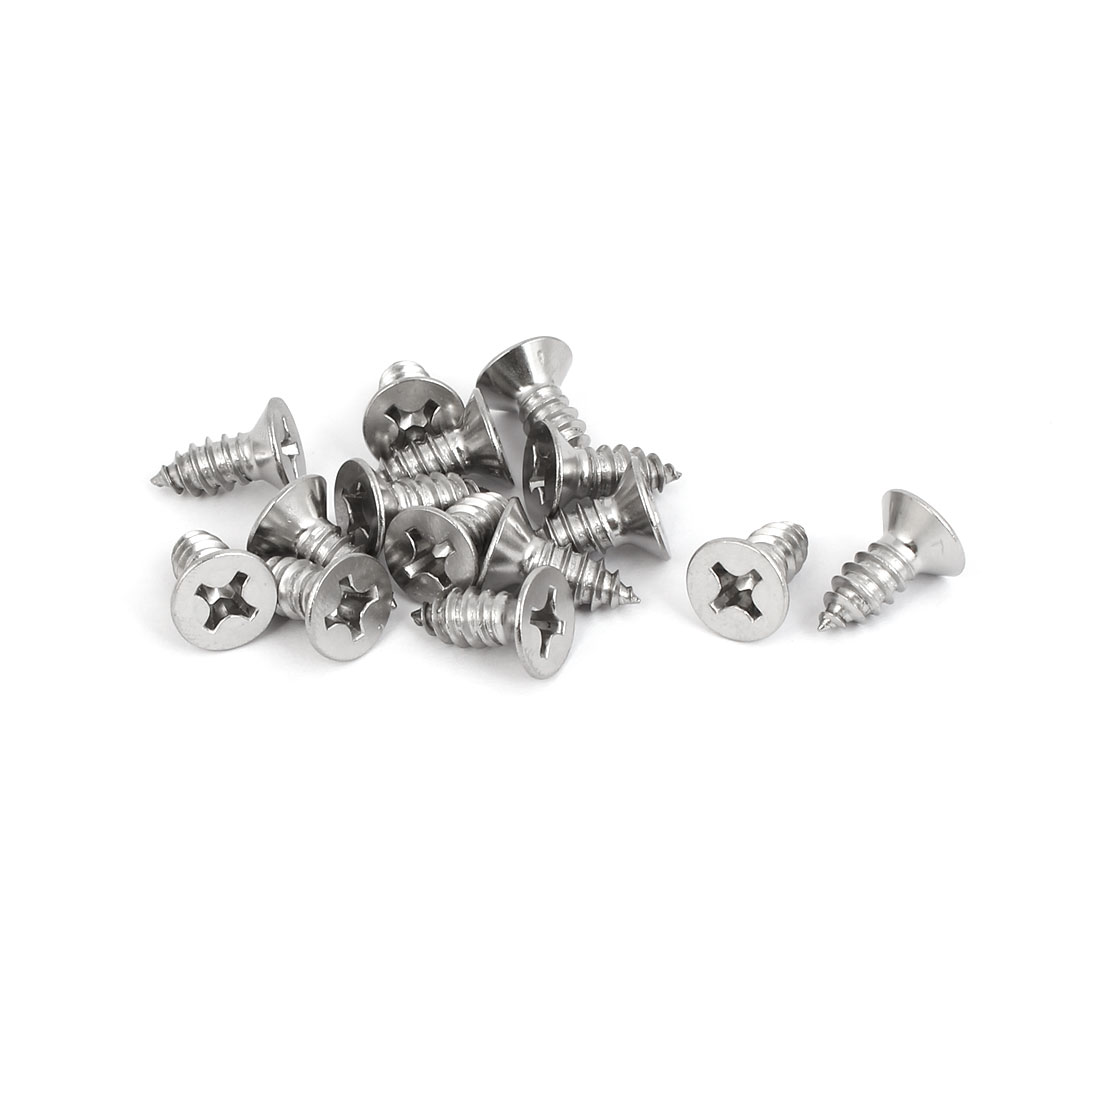 M6.3x16mm 316 Stainless Steel Flat Head Phillips Self Tapping Screws Bolts 15pcs